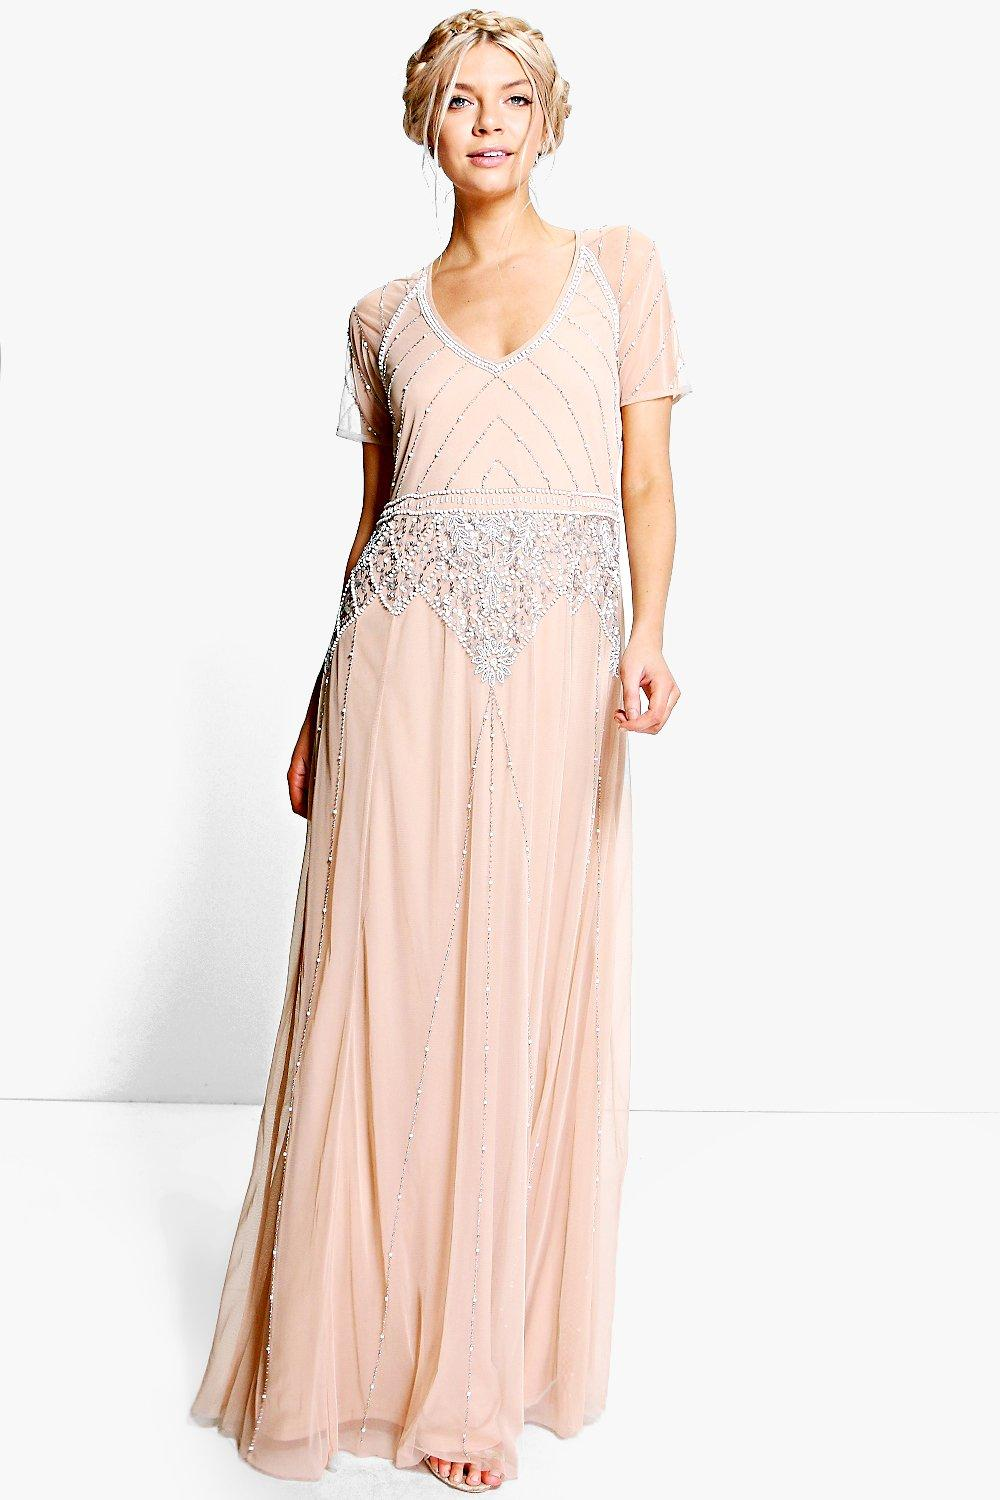 1920s Evening Dresses & Formal Gowns Womens Boutique Beaded Cap Sleeve Maxi Bridesmaid Dress - Beige - 10 $22.00 AT vintagedancer.com